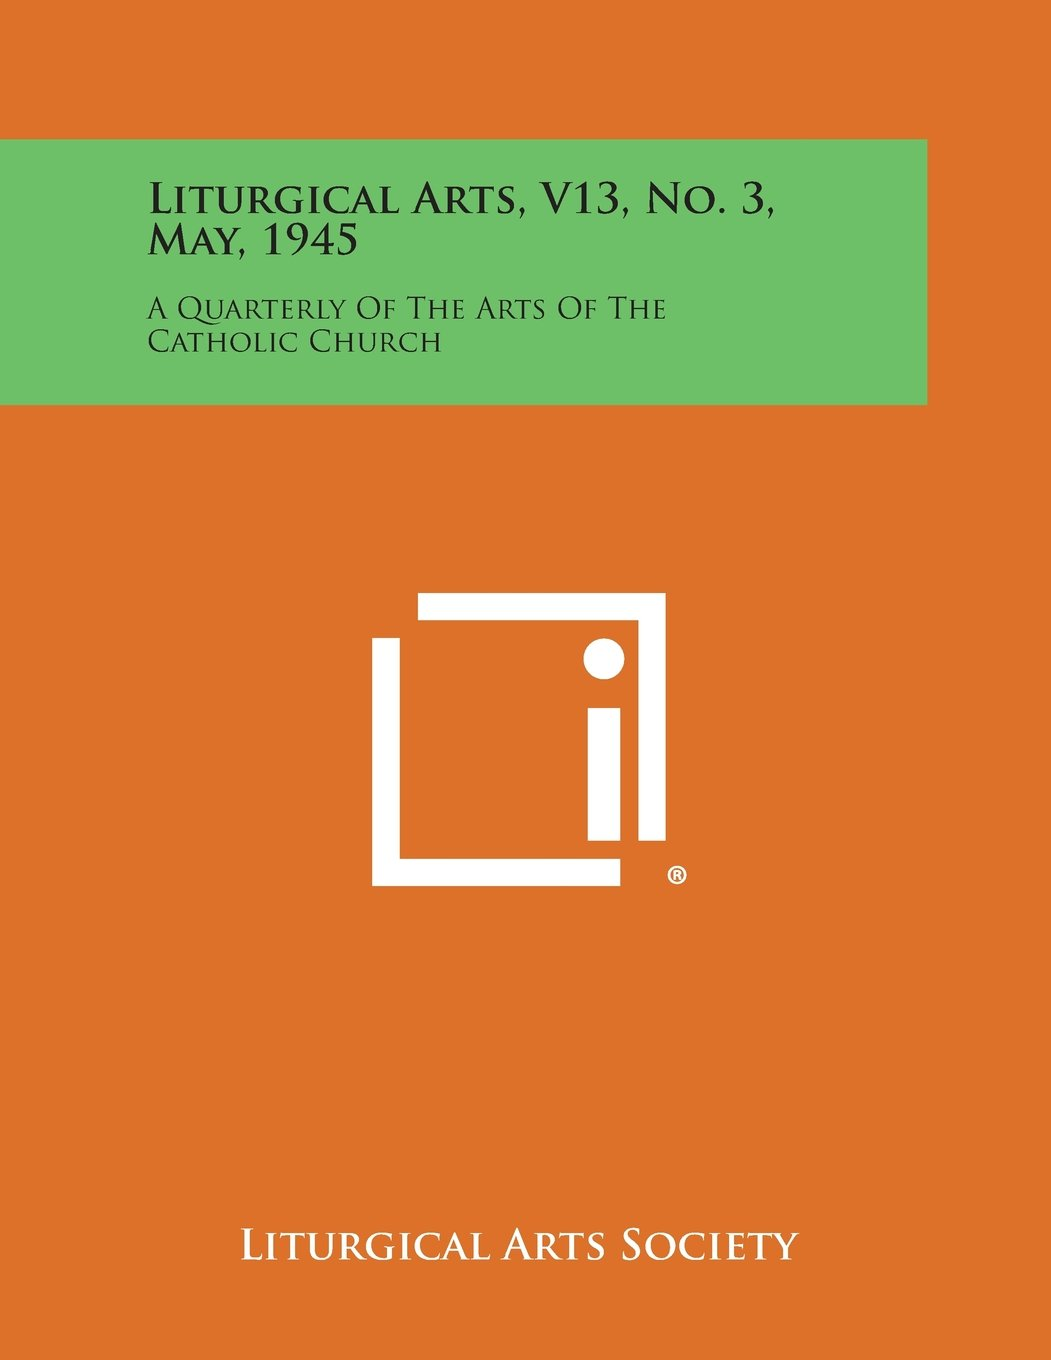 Liturgical Arts, V13, No. 3, May, 1945: A Quarterly of the Arts of the Catholic Church PDF